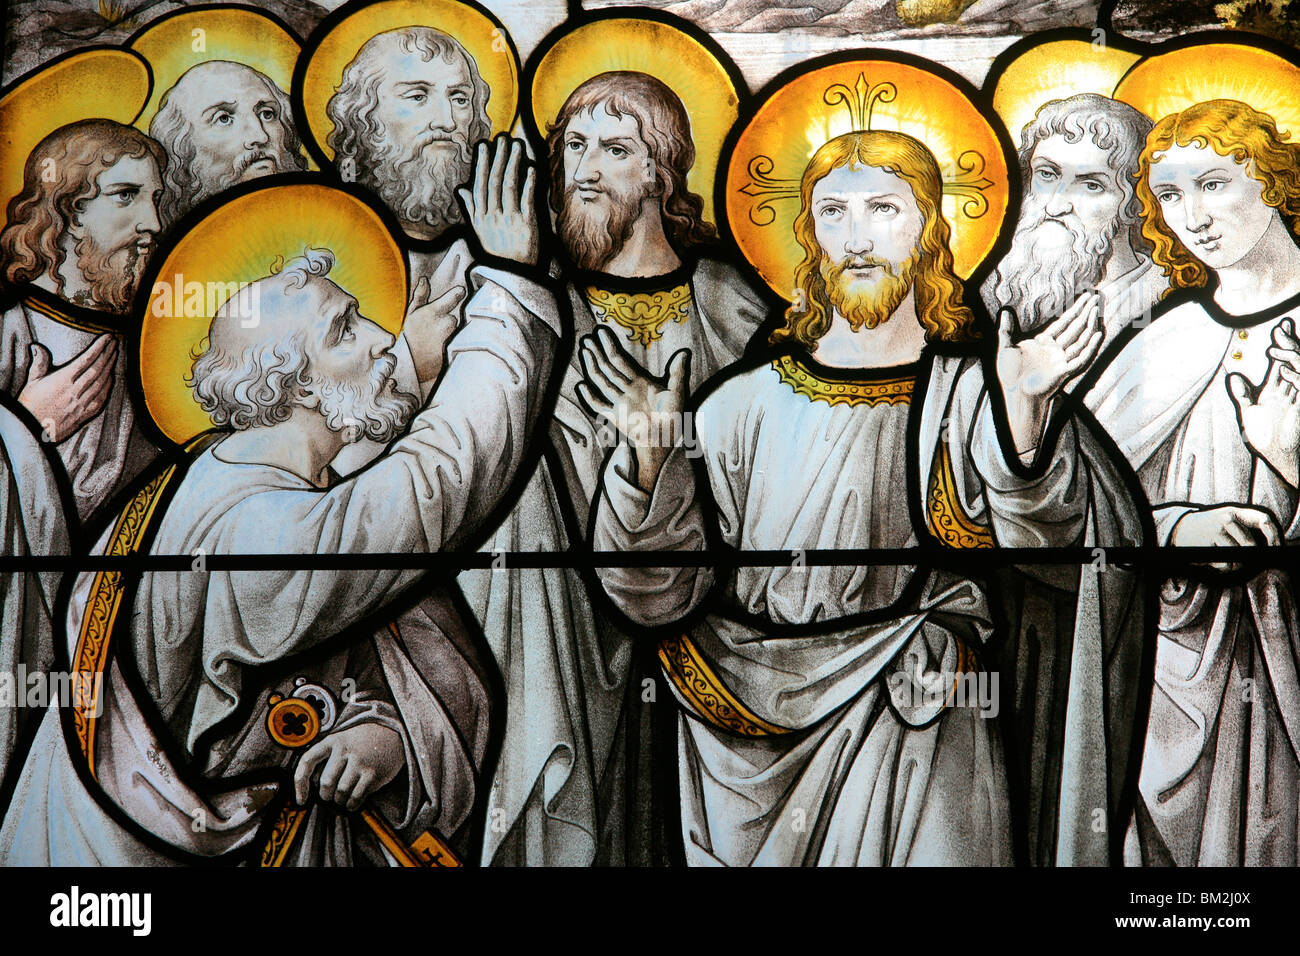 Stained glass window of St. Peter protesting his fidelity to Christ, Notre Dame de Beaune church, Beaune, Cote d'Or, - Stock Image